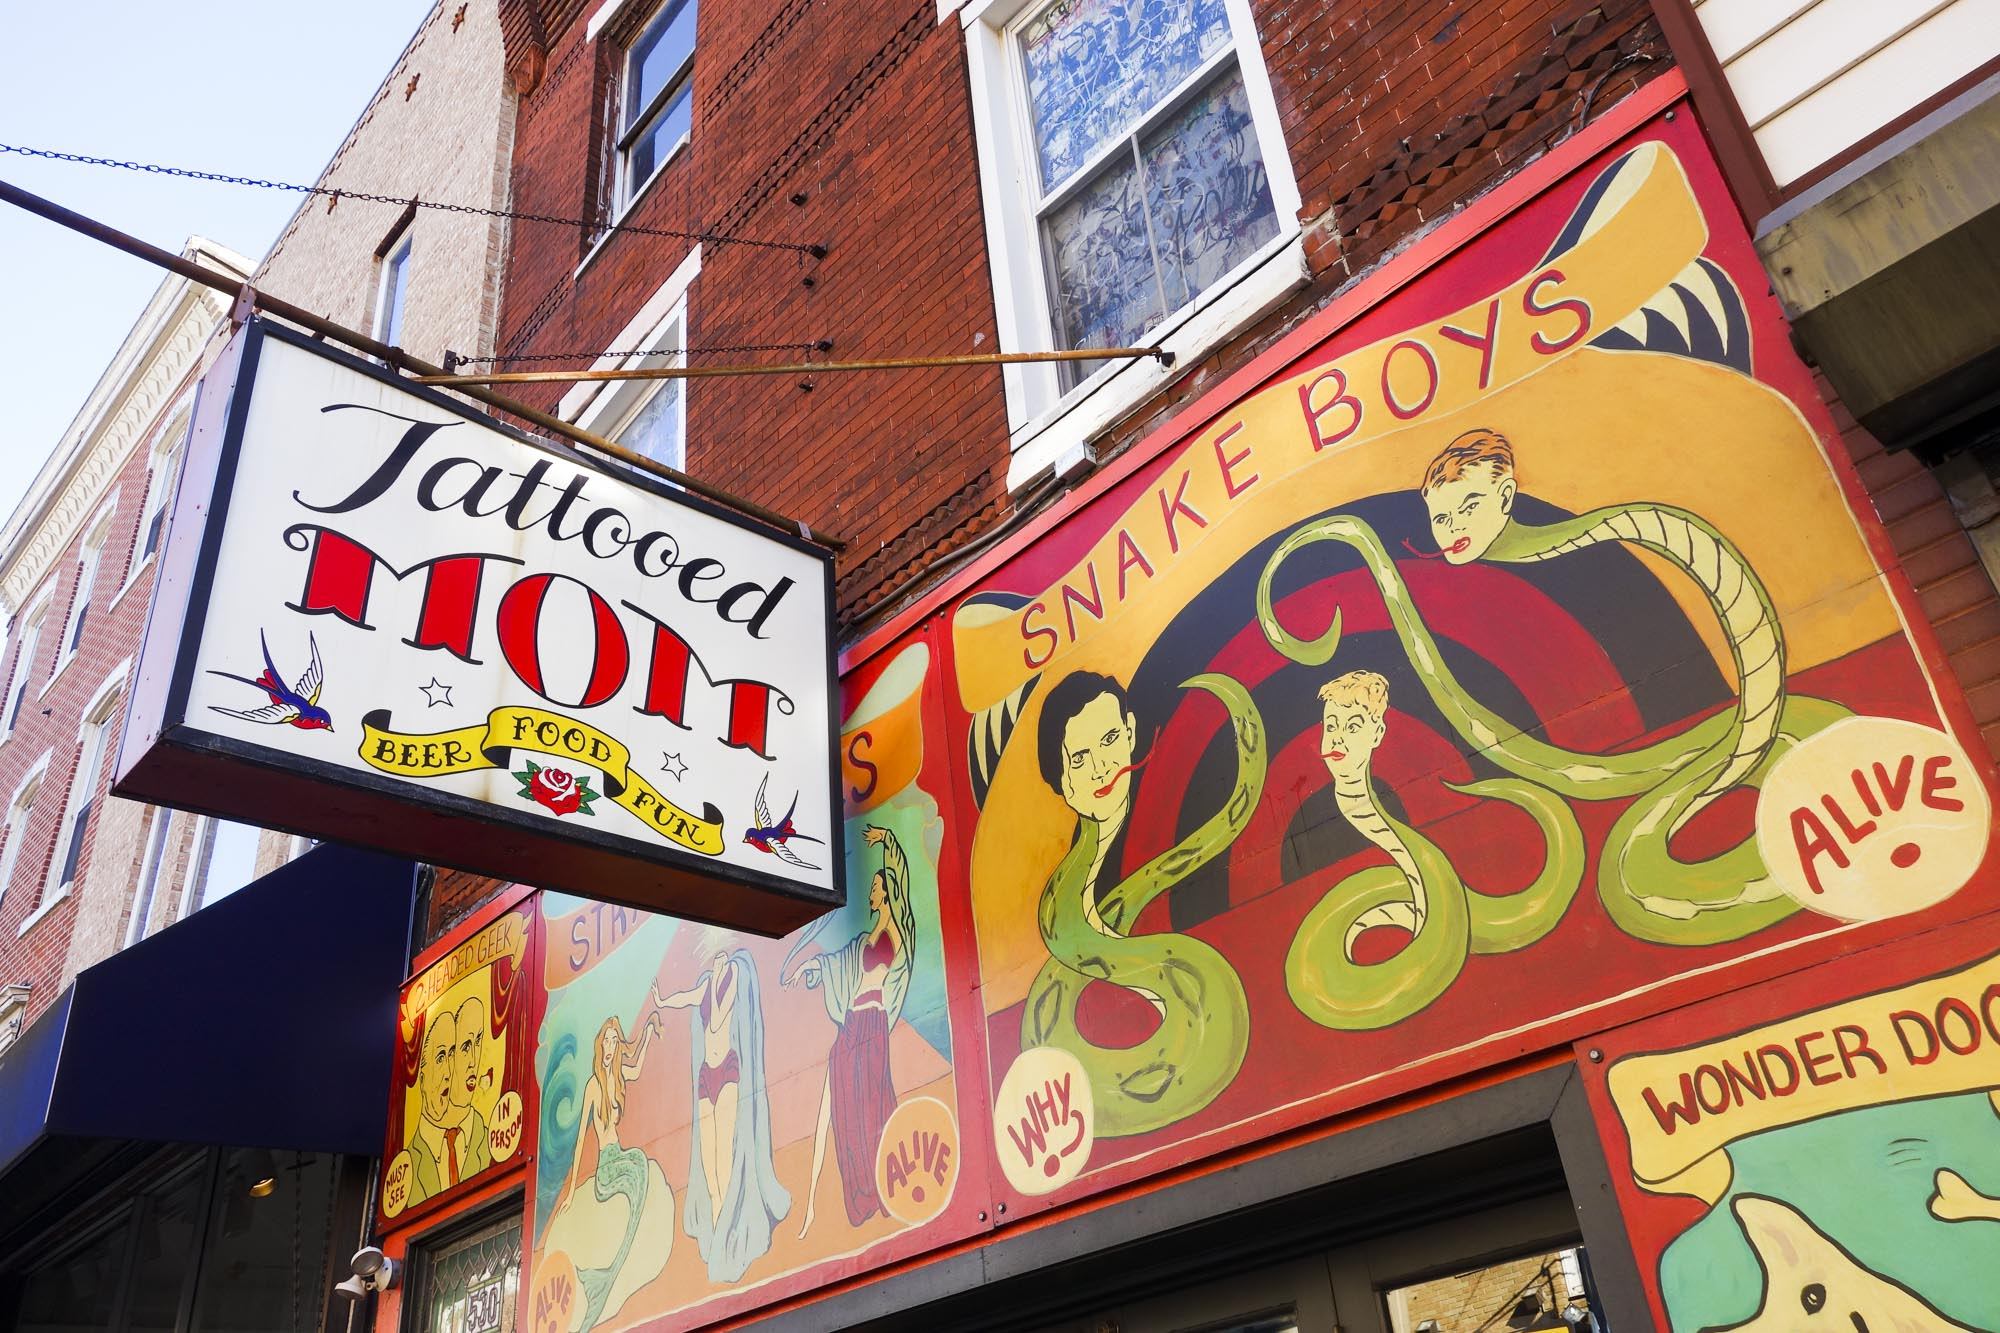 Tattooed Mom is located at 530 South Street in Philadelphia.